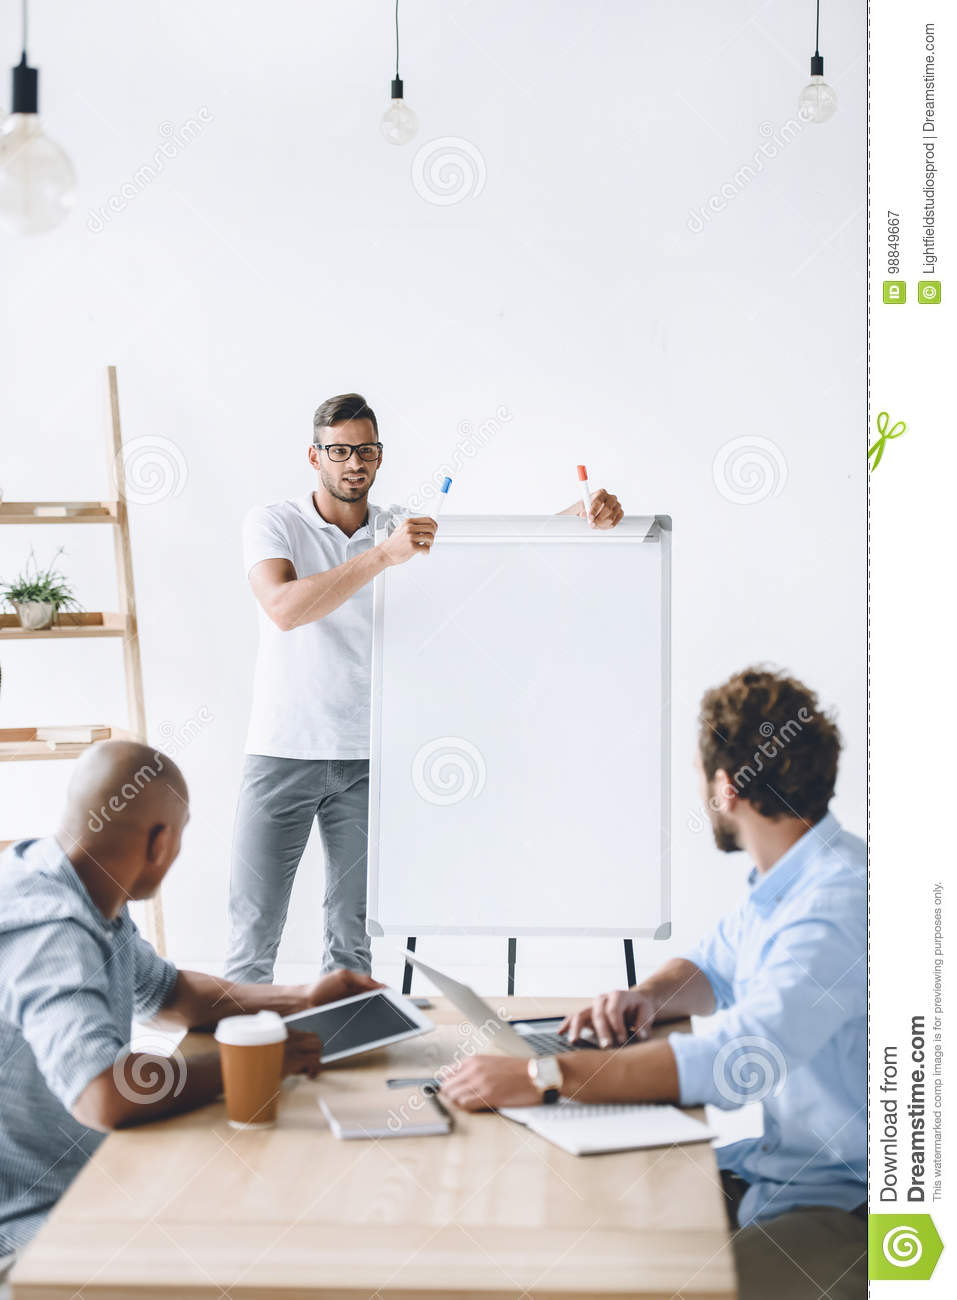 Businessman at white board making presentation to colleagues